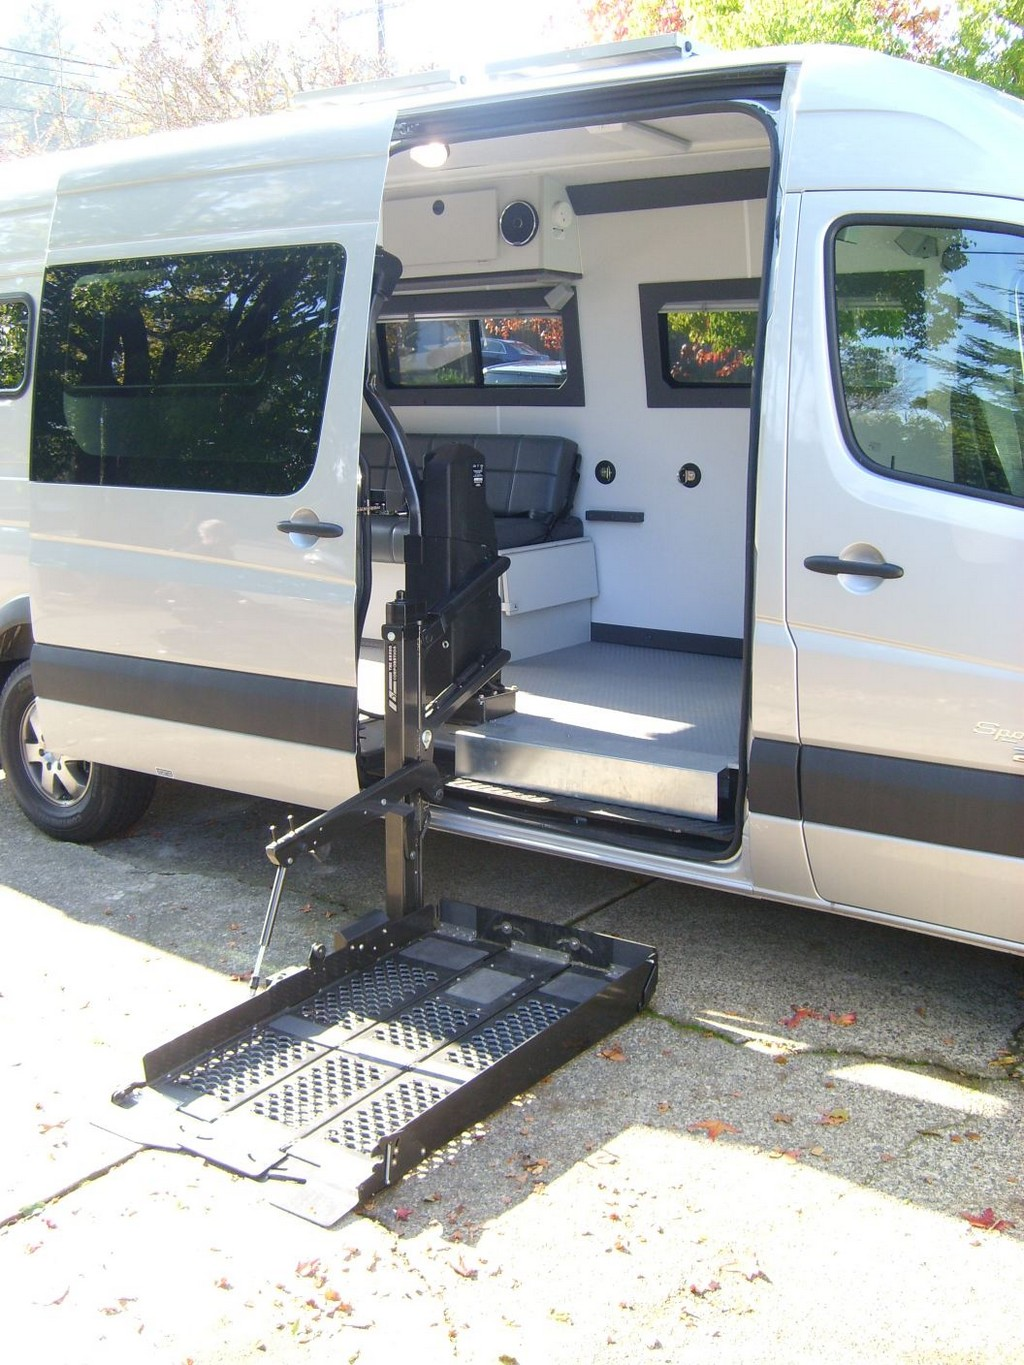 crow river single arm wheelchair lift, bed lift for wheelchair person, used wheelchair scooter lifts, wheel chair lift ramps